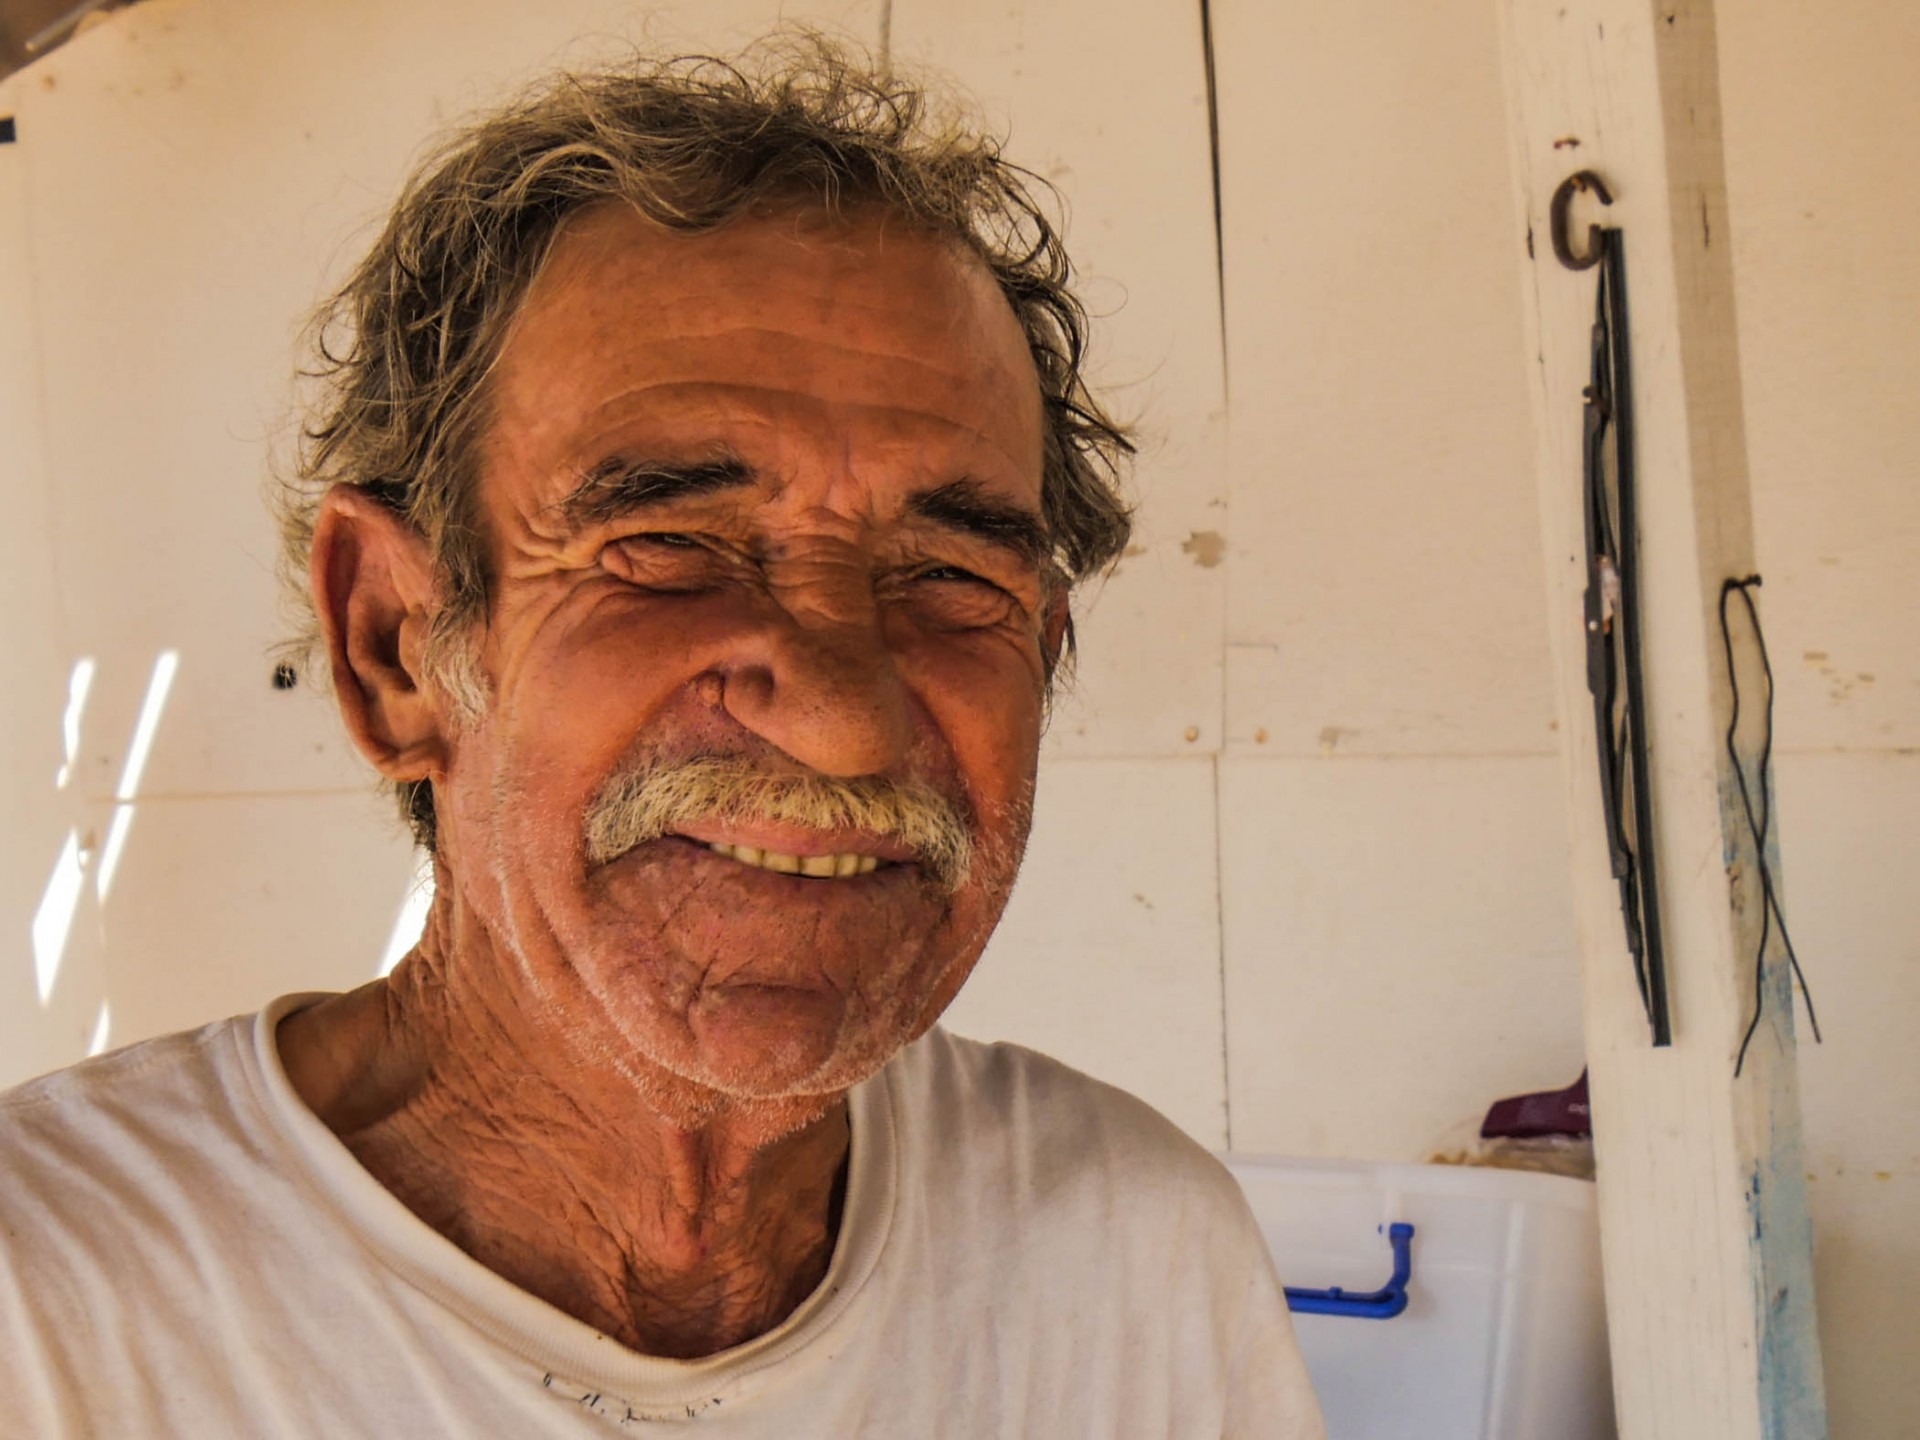 It can be tough to get men to smile for the camera in Mexico, but José was pretty jovial.